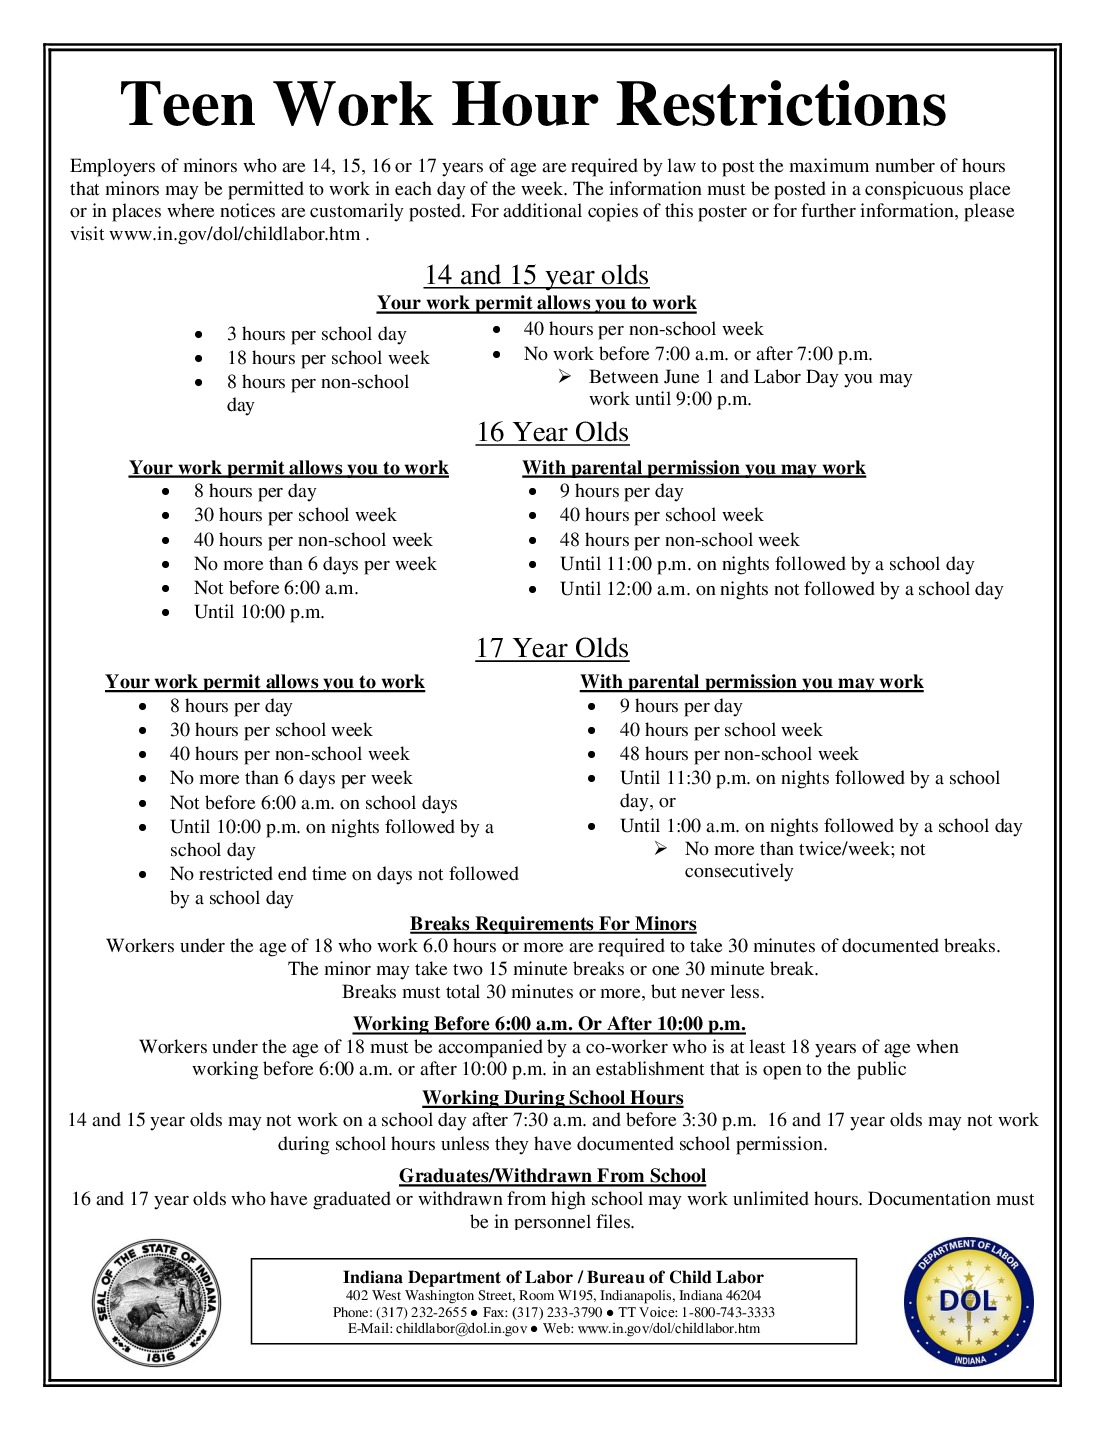 Free Indiana Indiana Child Labor Labor Law Poster